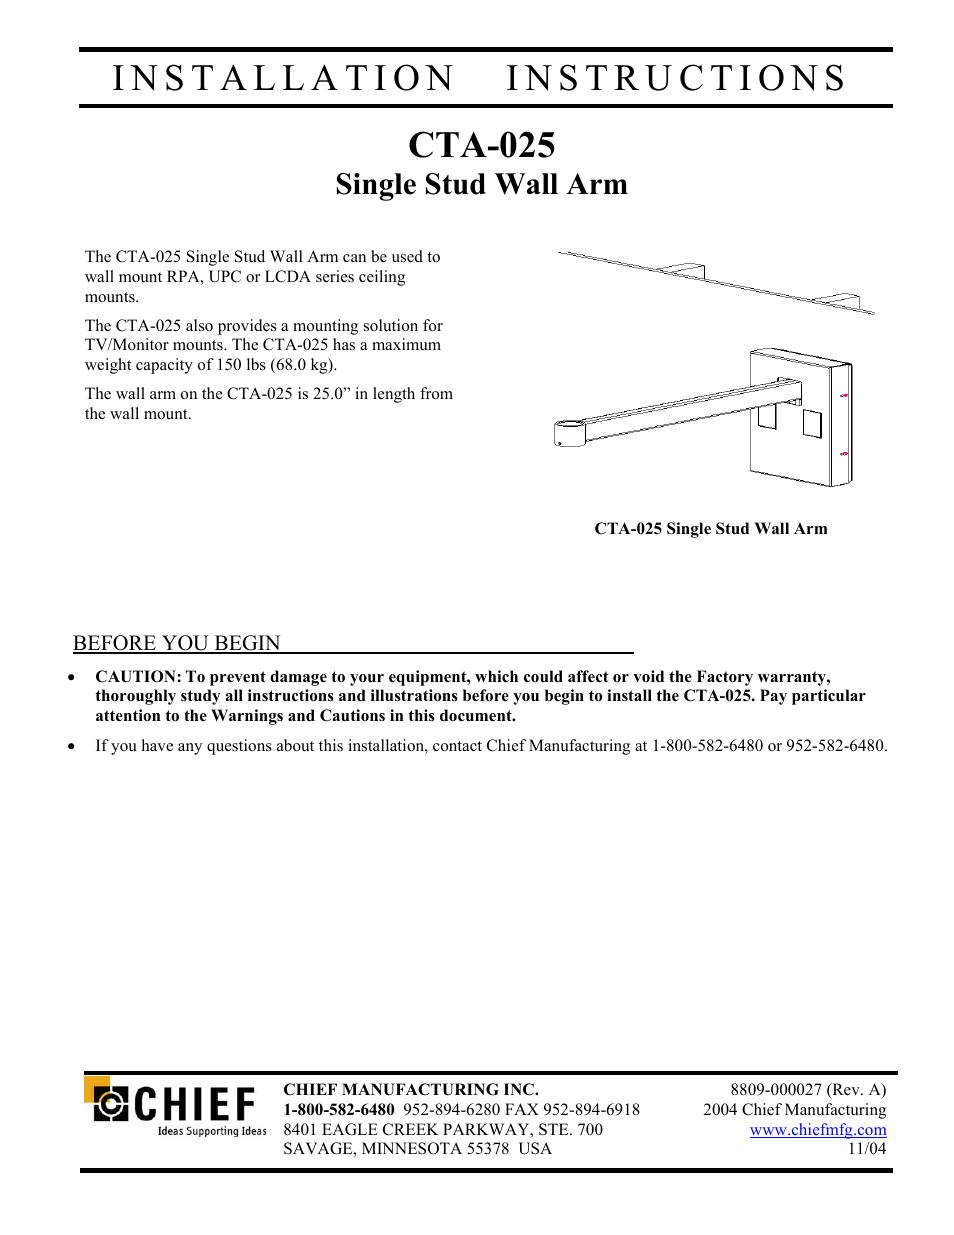 chief manufacturing single stud wall arm cta 025 user manual 6 pages rh manualsdir com Manufacturing by Hand Manufacturing Manual Labor